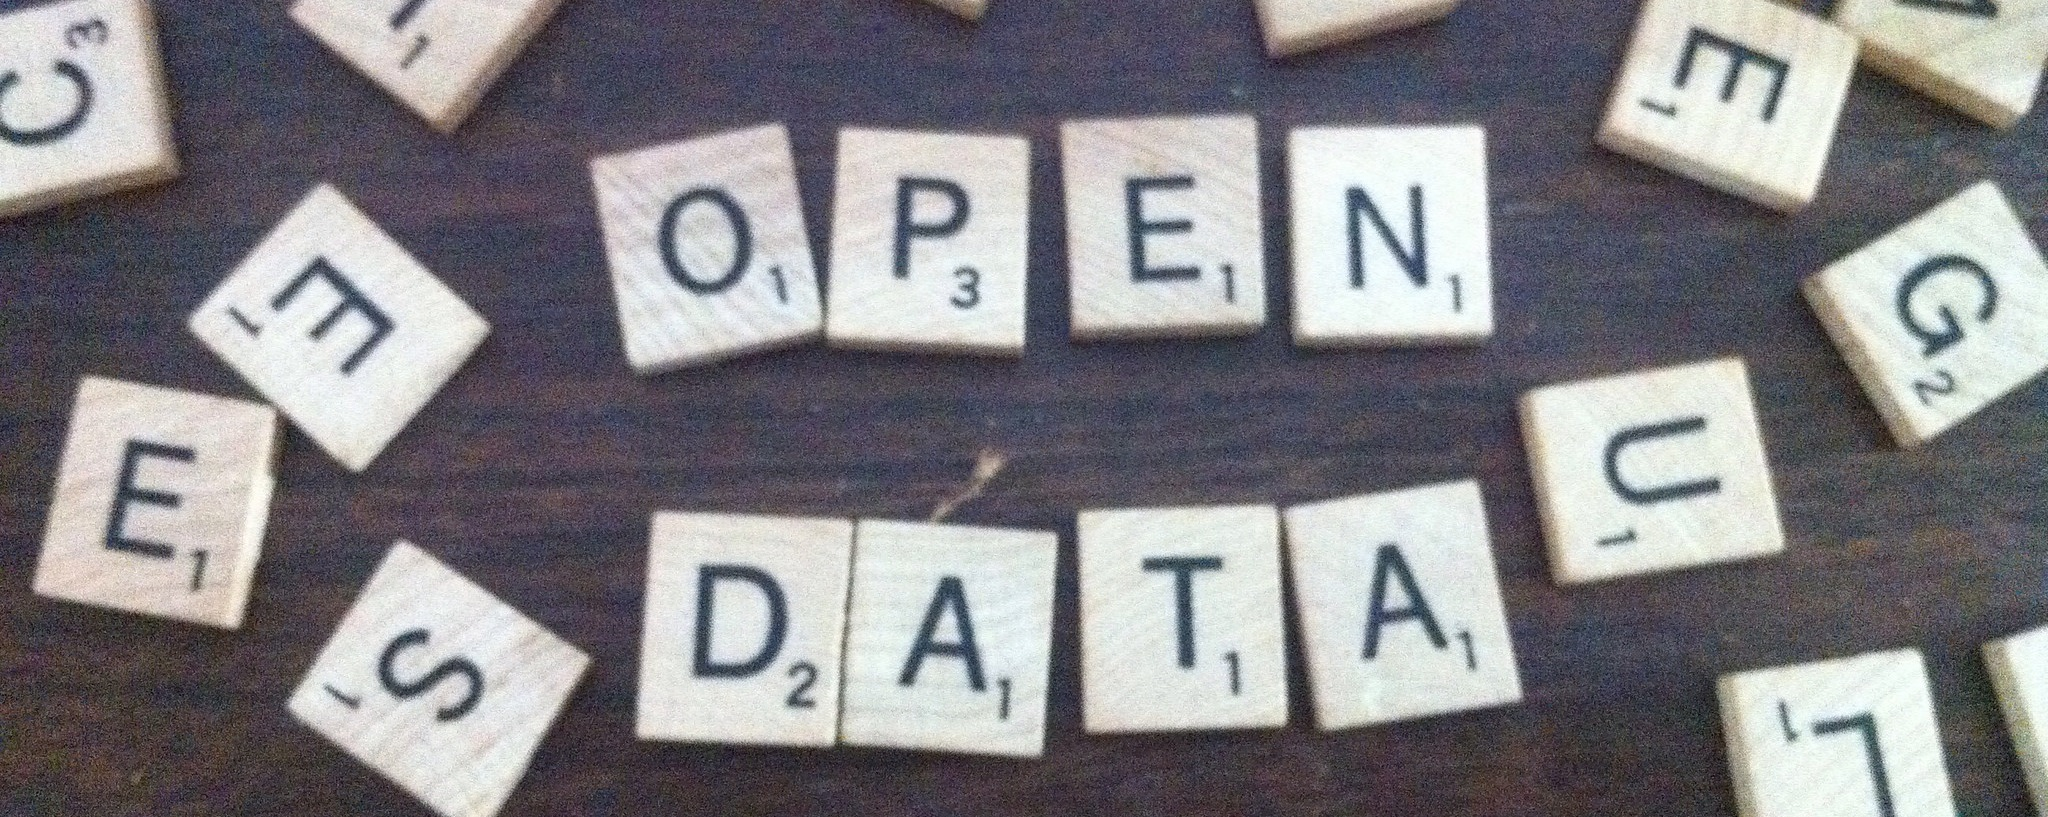 Come join us March 4th for a celebration of Open Data